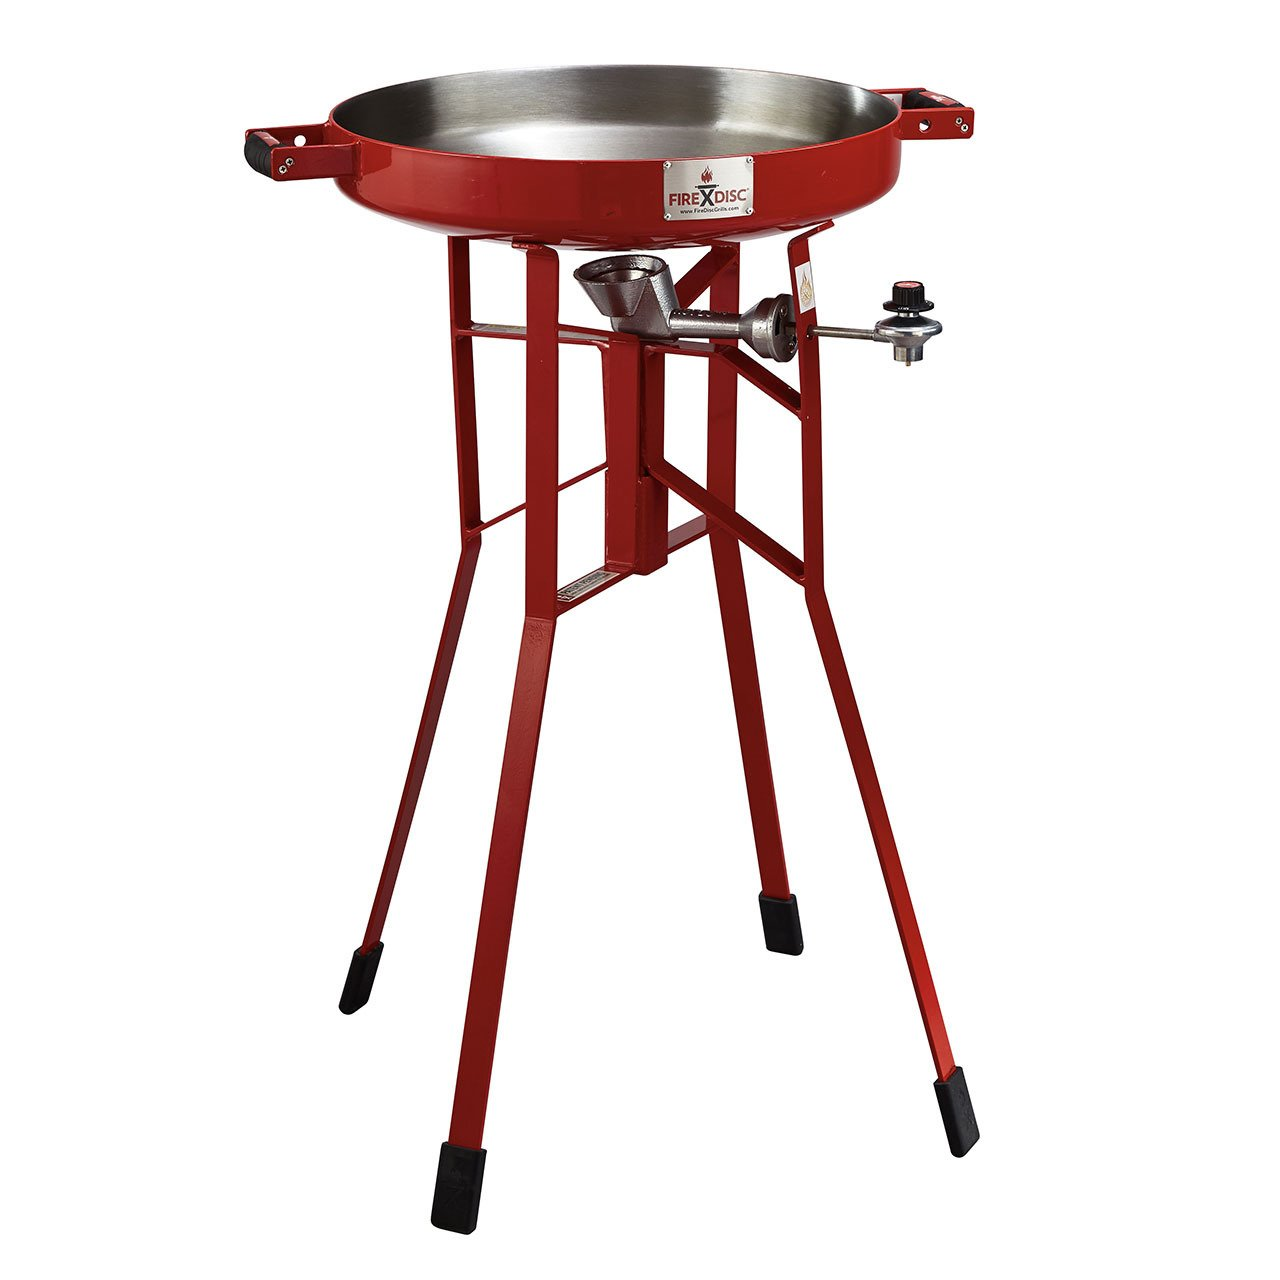 FireDisc - Deep 36'' Backyard Plow Disc Cooker - Fireman Red | Portable Propane Outdoor Camping Grill